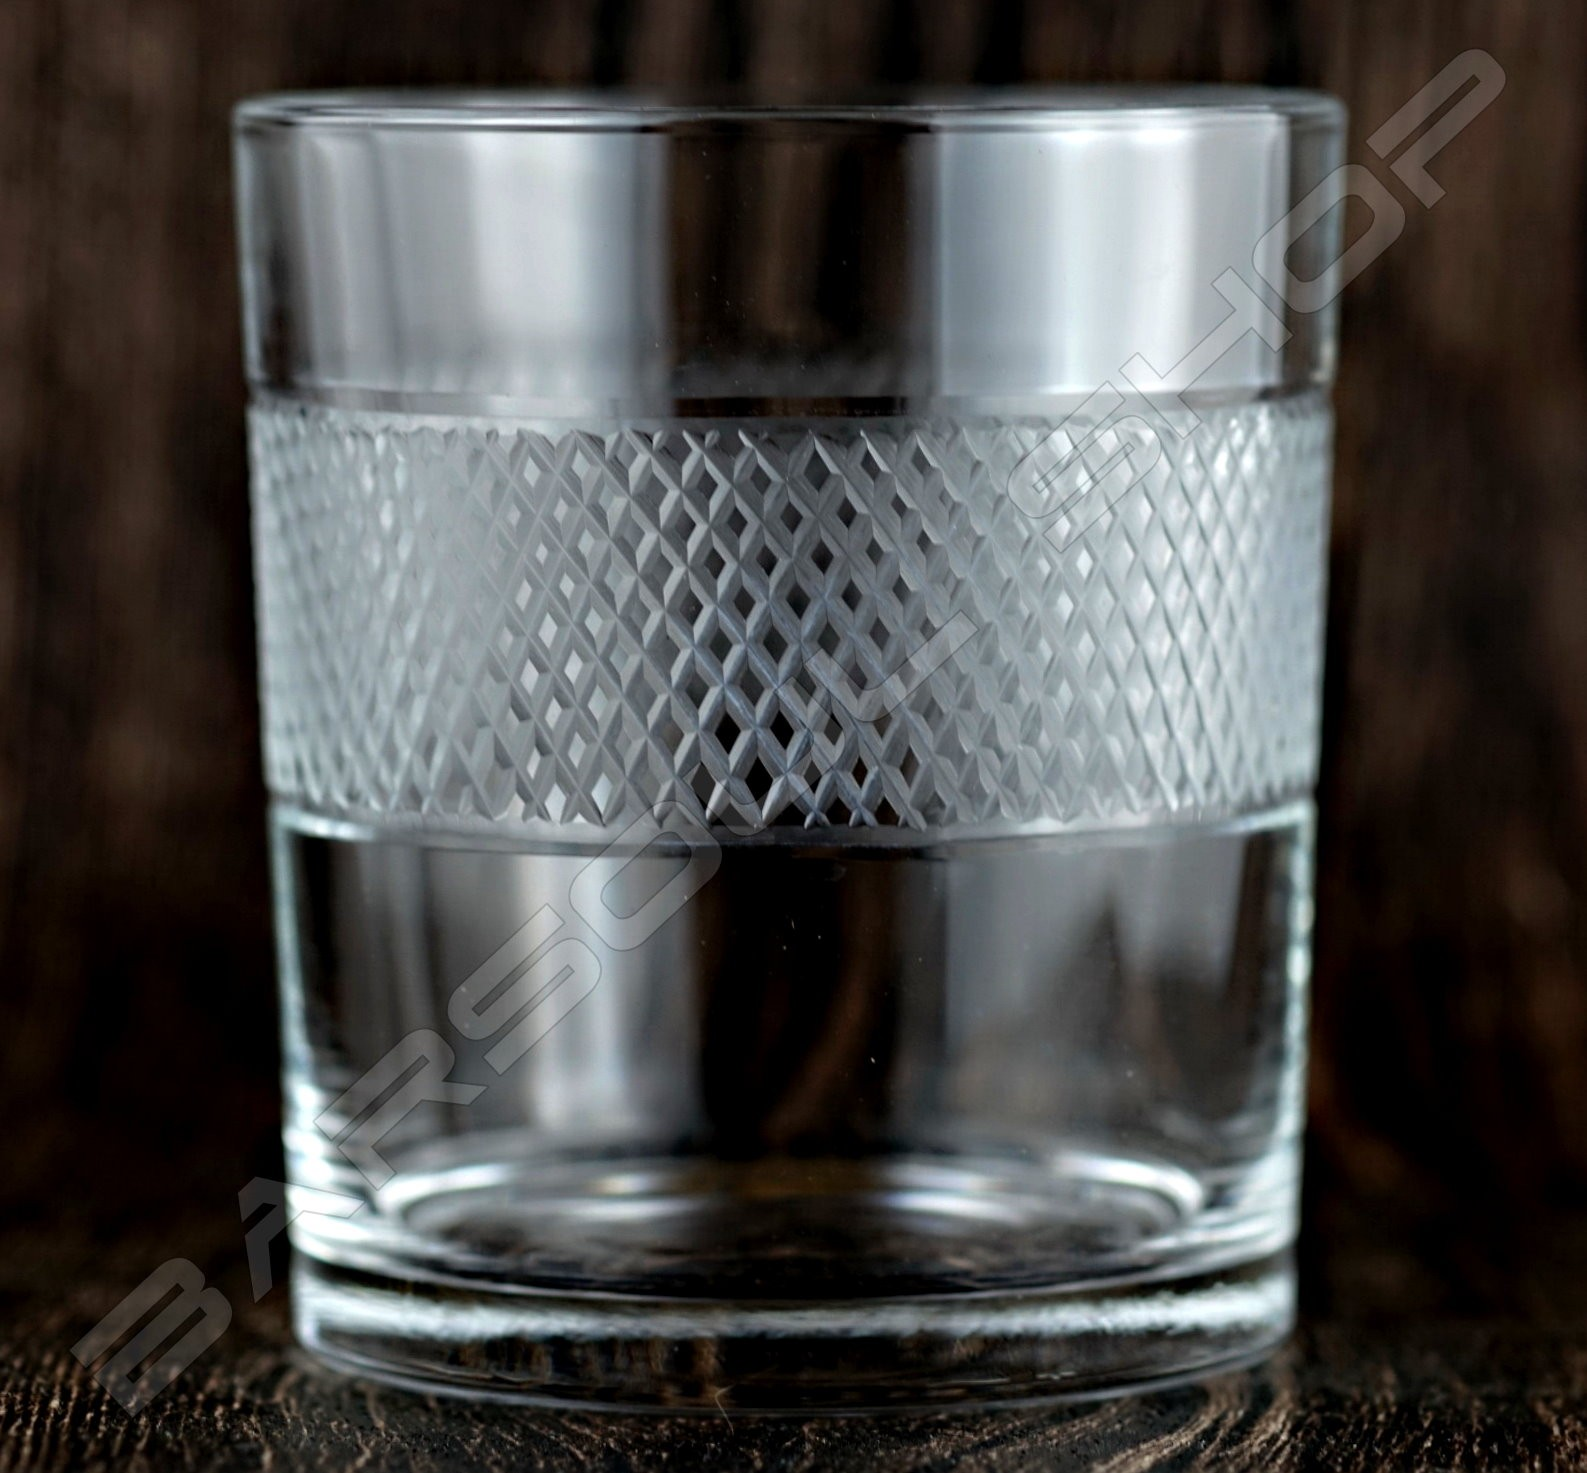 德國雕刻威士忌杯 A Germany SPIEGELAU Whisky Tumbler A